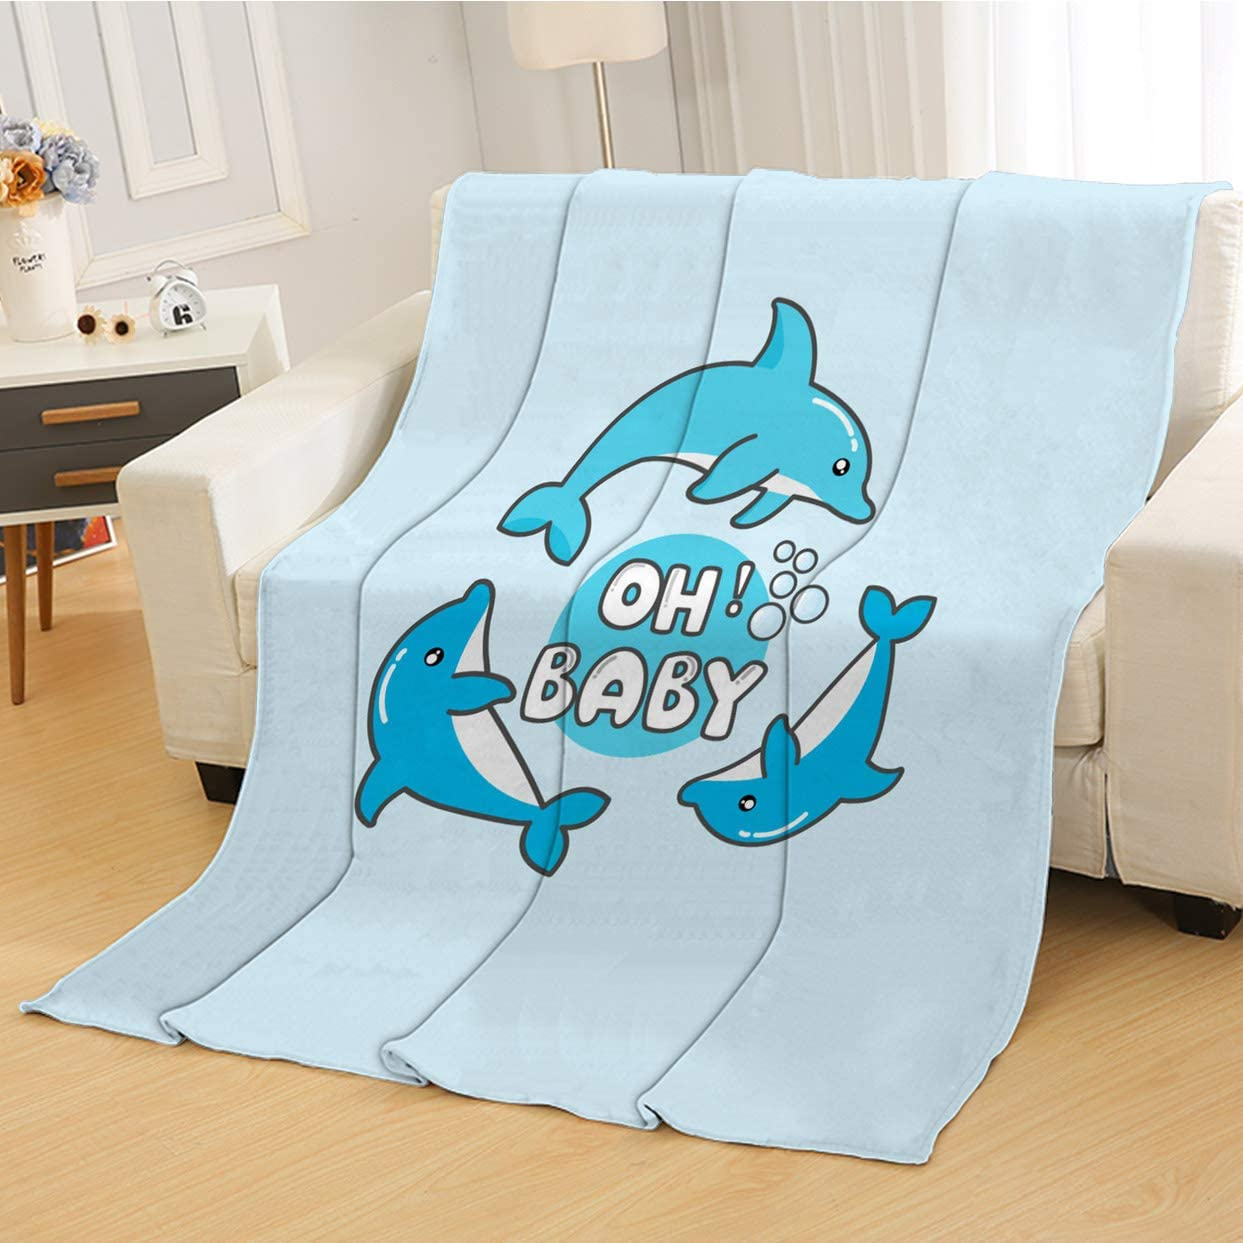 RLDSESS Cartoon Soft Baby Blanket, Soft Weighted Blanket,Cute Cartoon Dolphin and Baby Illustration,Super Soft Blanketry for Bed Couch,Baby Size: 31Wx47L inch